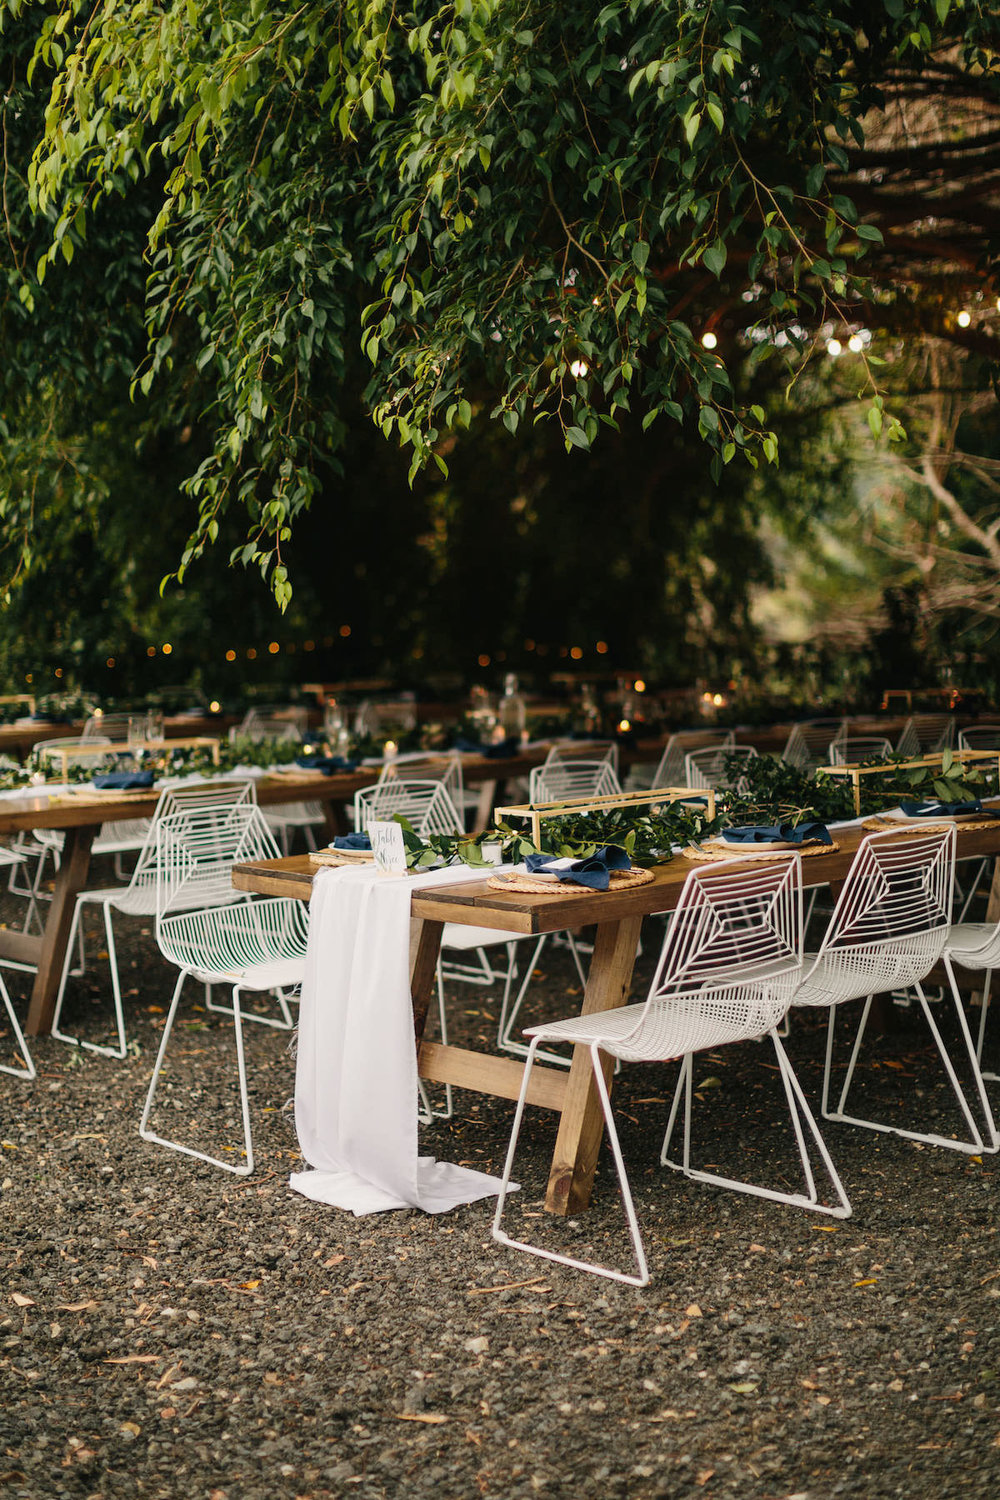 Real Wedding | Eloise + Dan, House of Avongale, Bilambil Northern NSW Wedding | Hampton Event Hire, wedding and event hire | Photo by Finch & Oak Photography